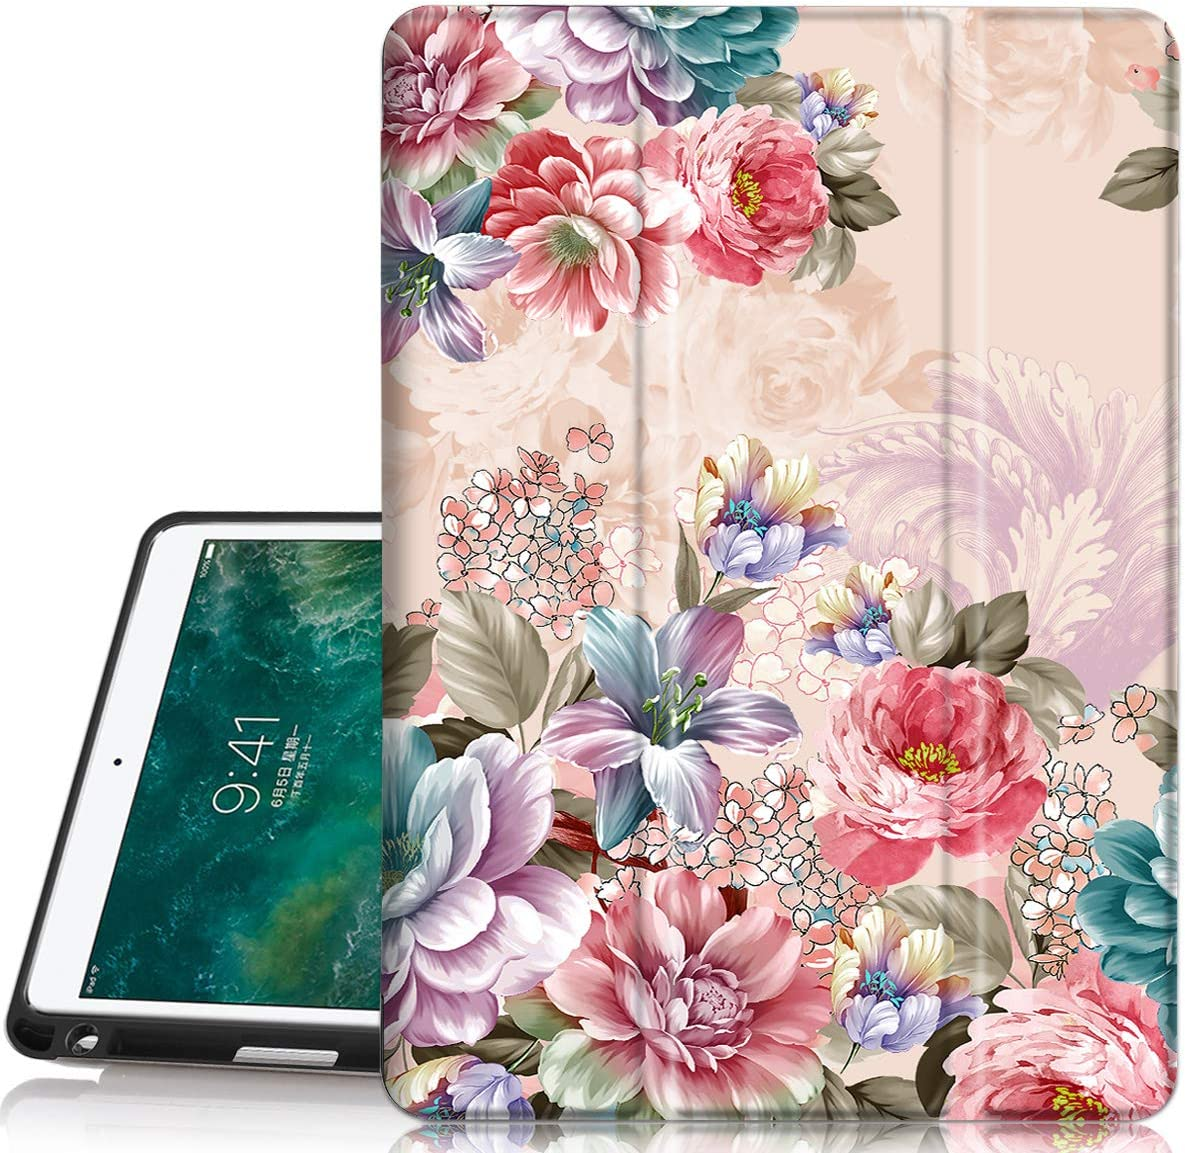 Hocase iPad Air 3rd Gen/iPad Pro 10.5 Case, Trifold Smart Case with Pencil Holder, Unique Pattern Design, Auto Sleep/Wake, Soft Back Cover for iPad A1701/A1709/A2152/A2123/A2153 - Peony Flowers